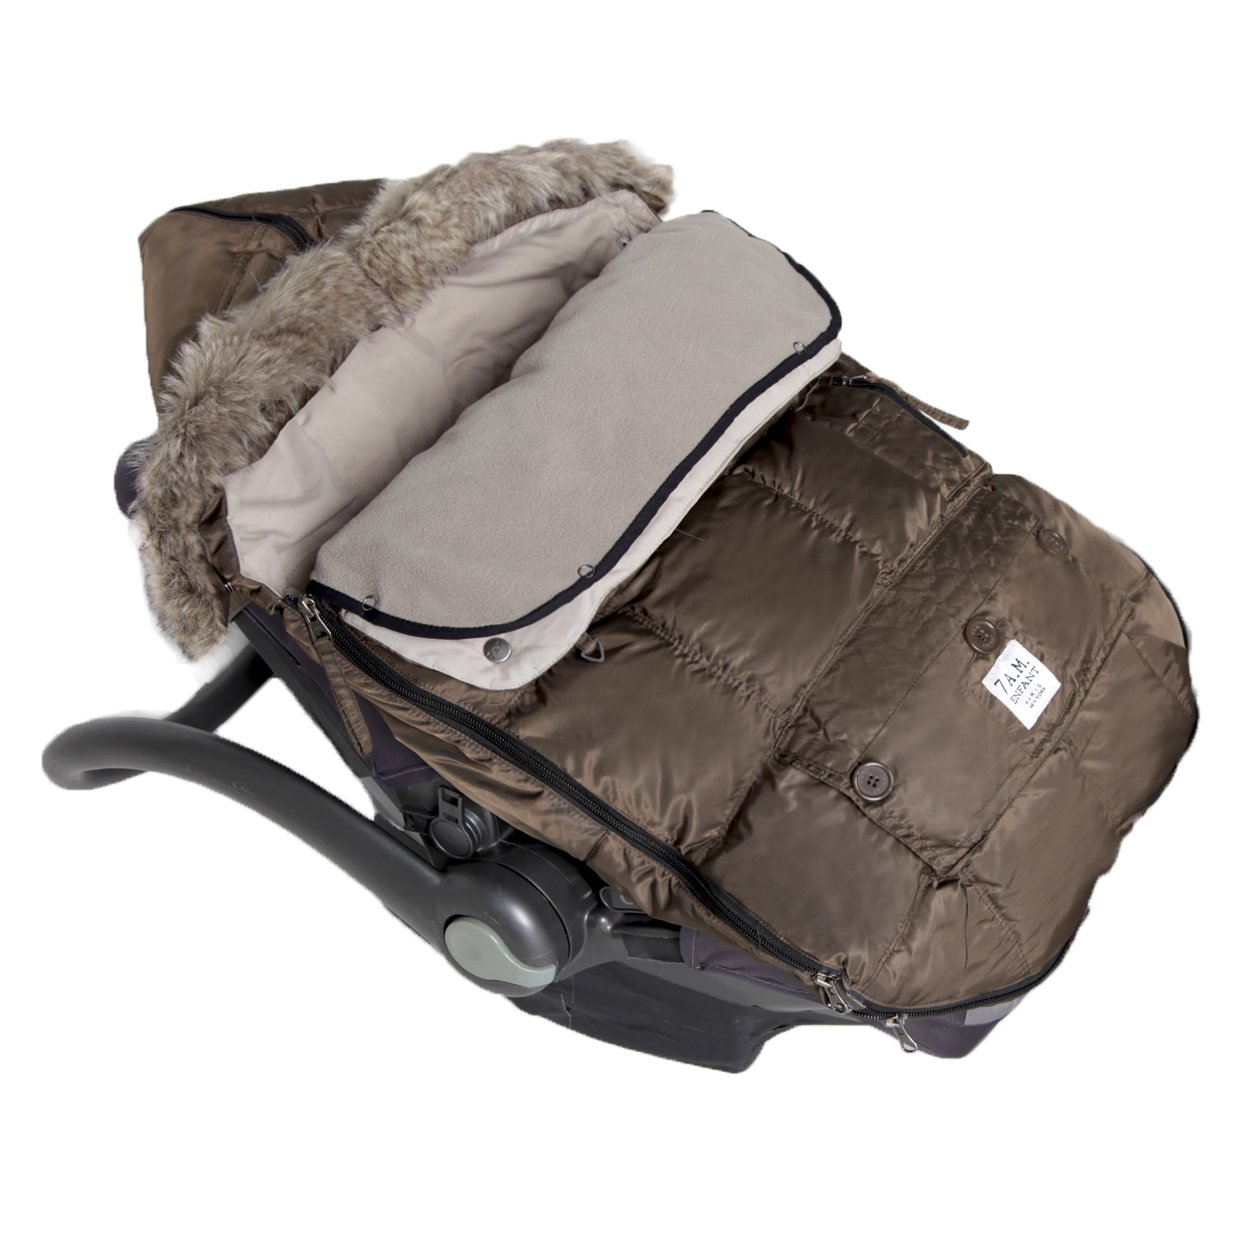 7AM Enfant ''Le Sac Igloo'' Footmuff, Converts into a Single Panel Stroller and Car Seat Cover - Café, Large